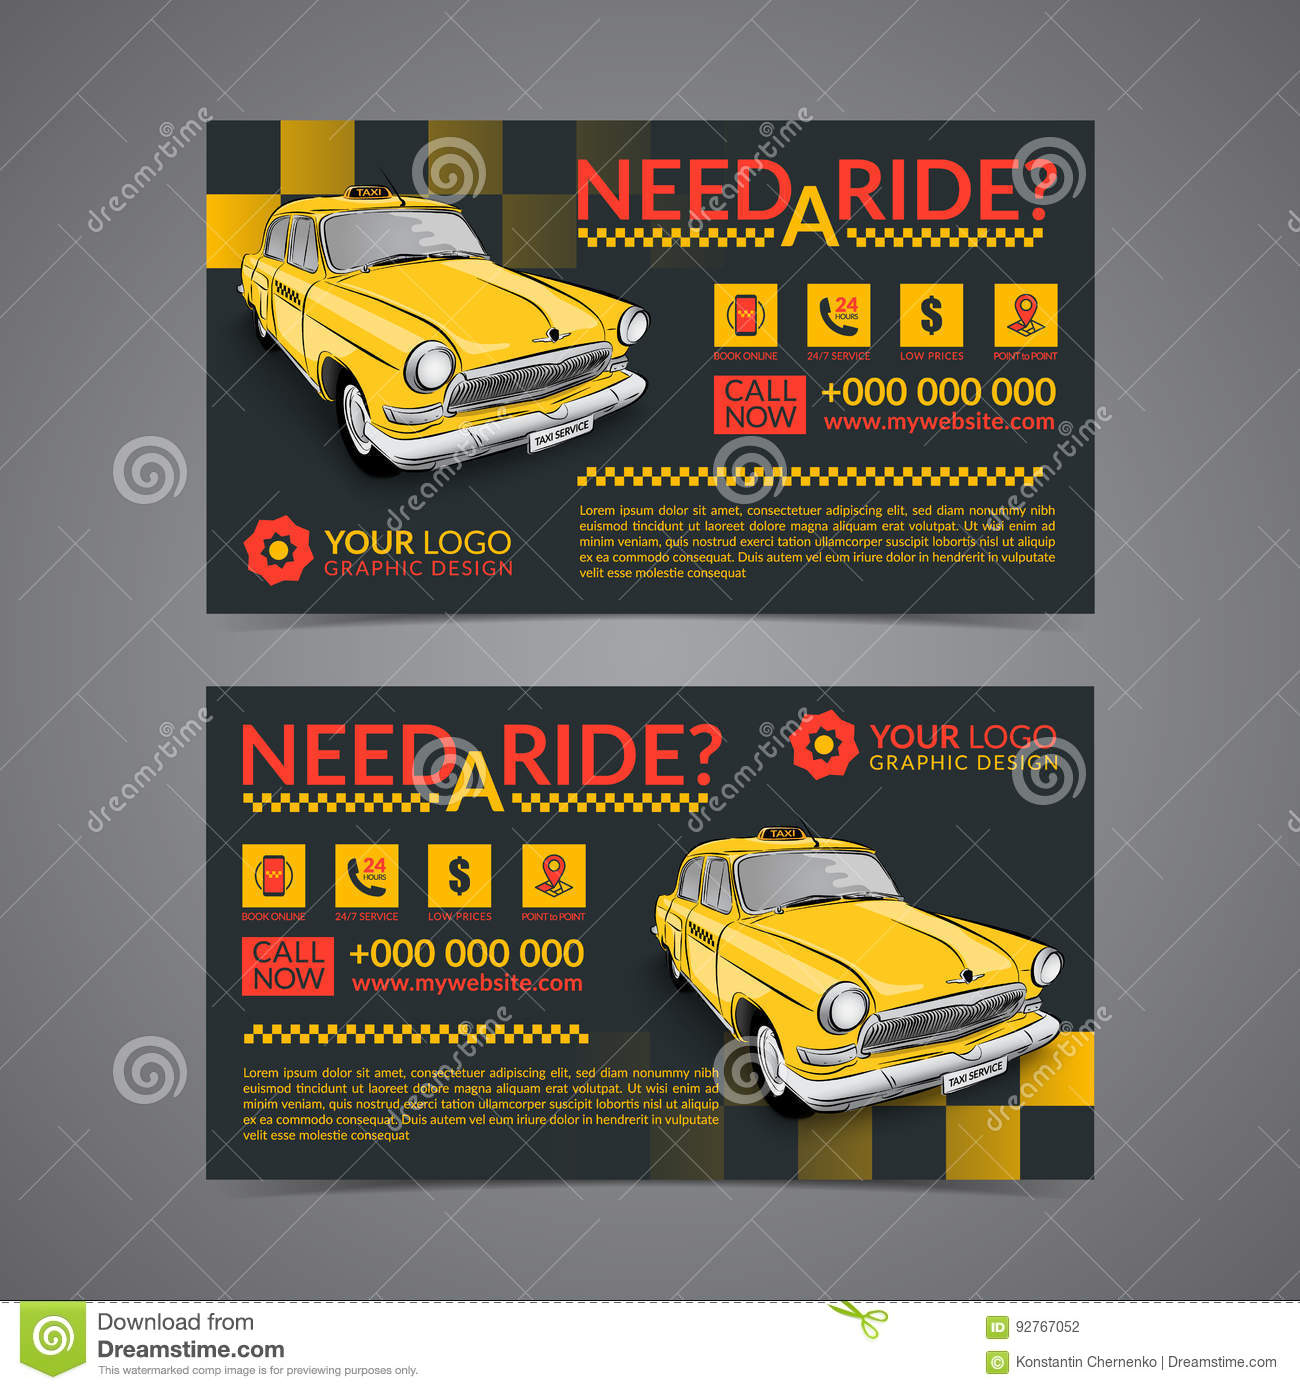 Taxi pickup service business card layout template. Create your own business cards.